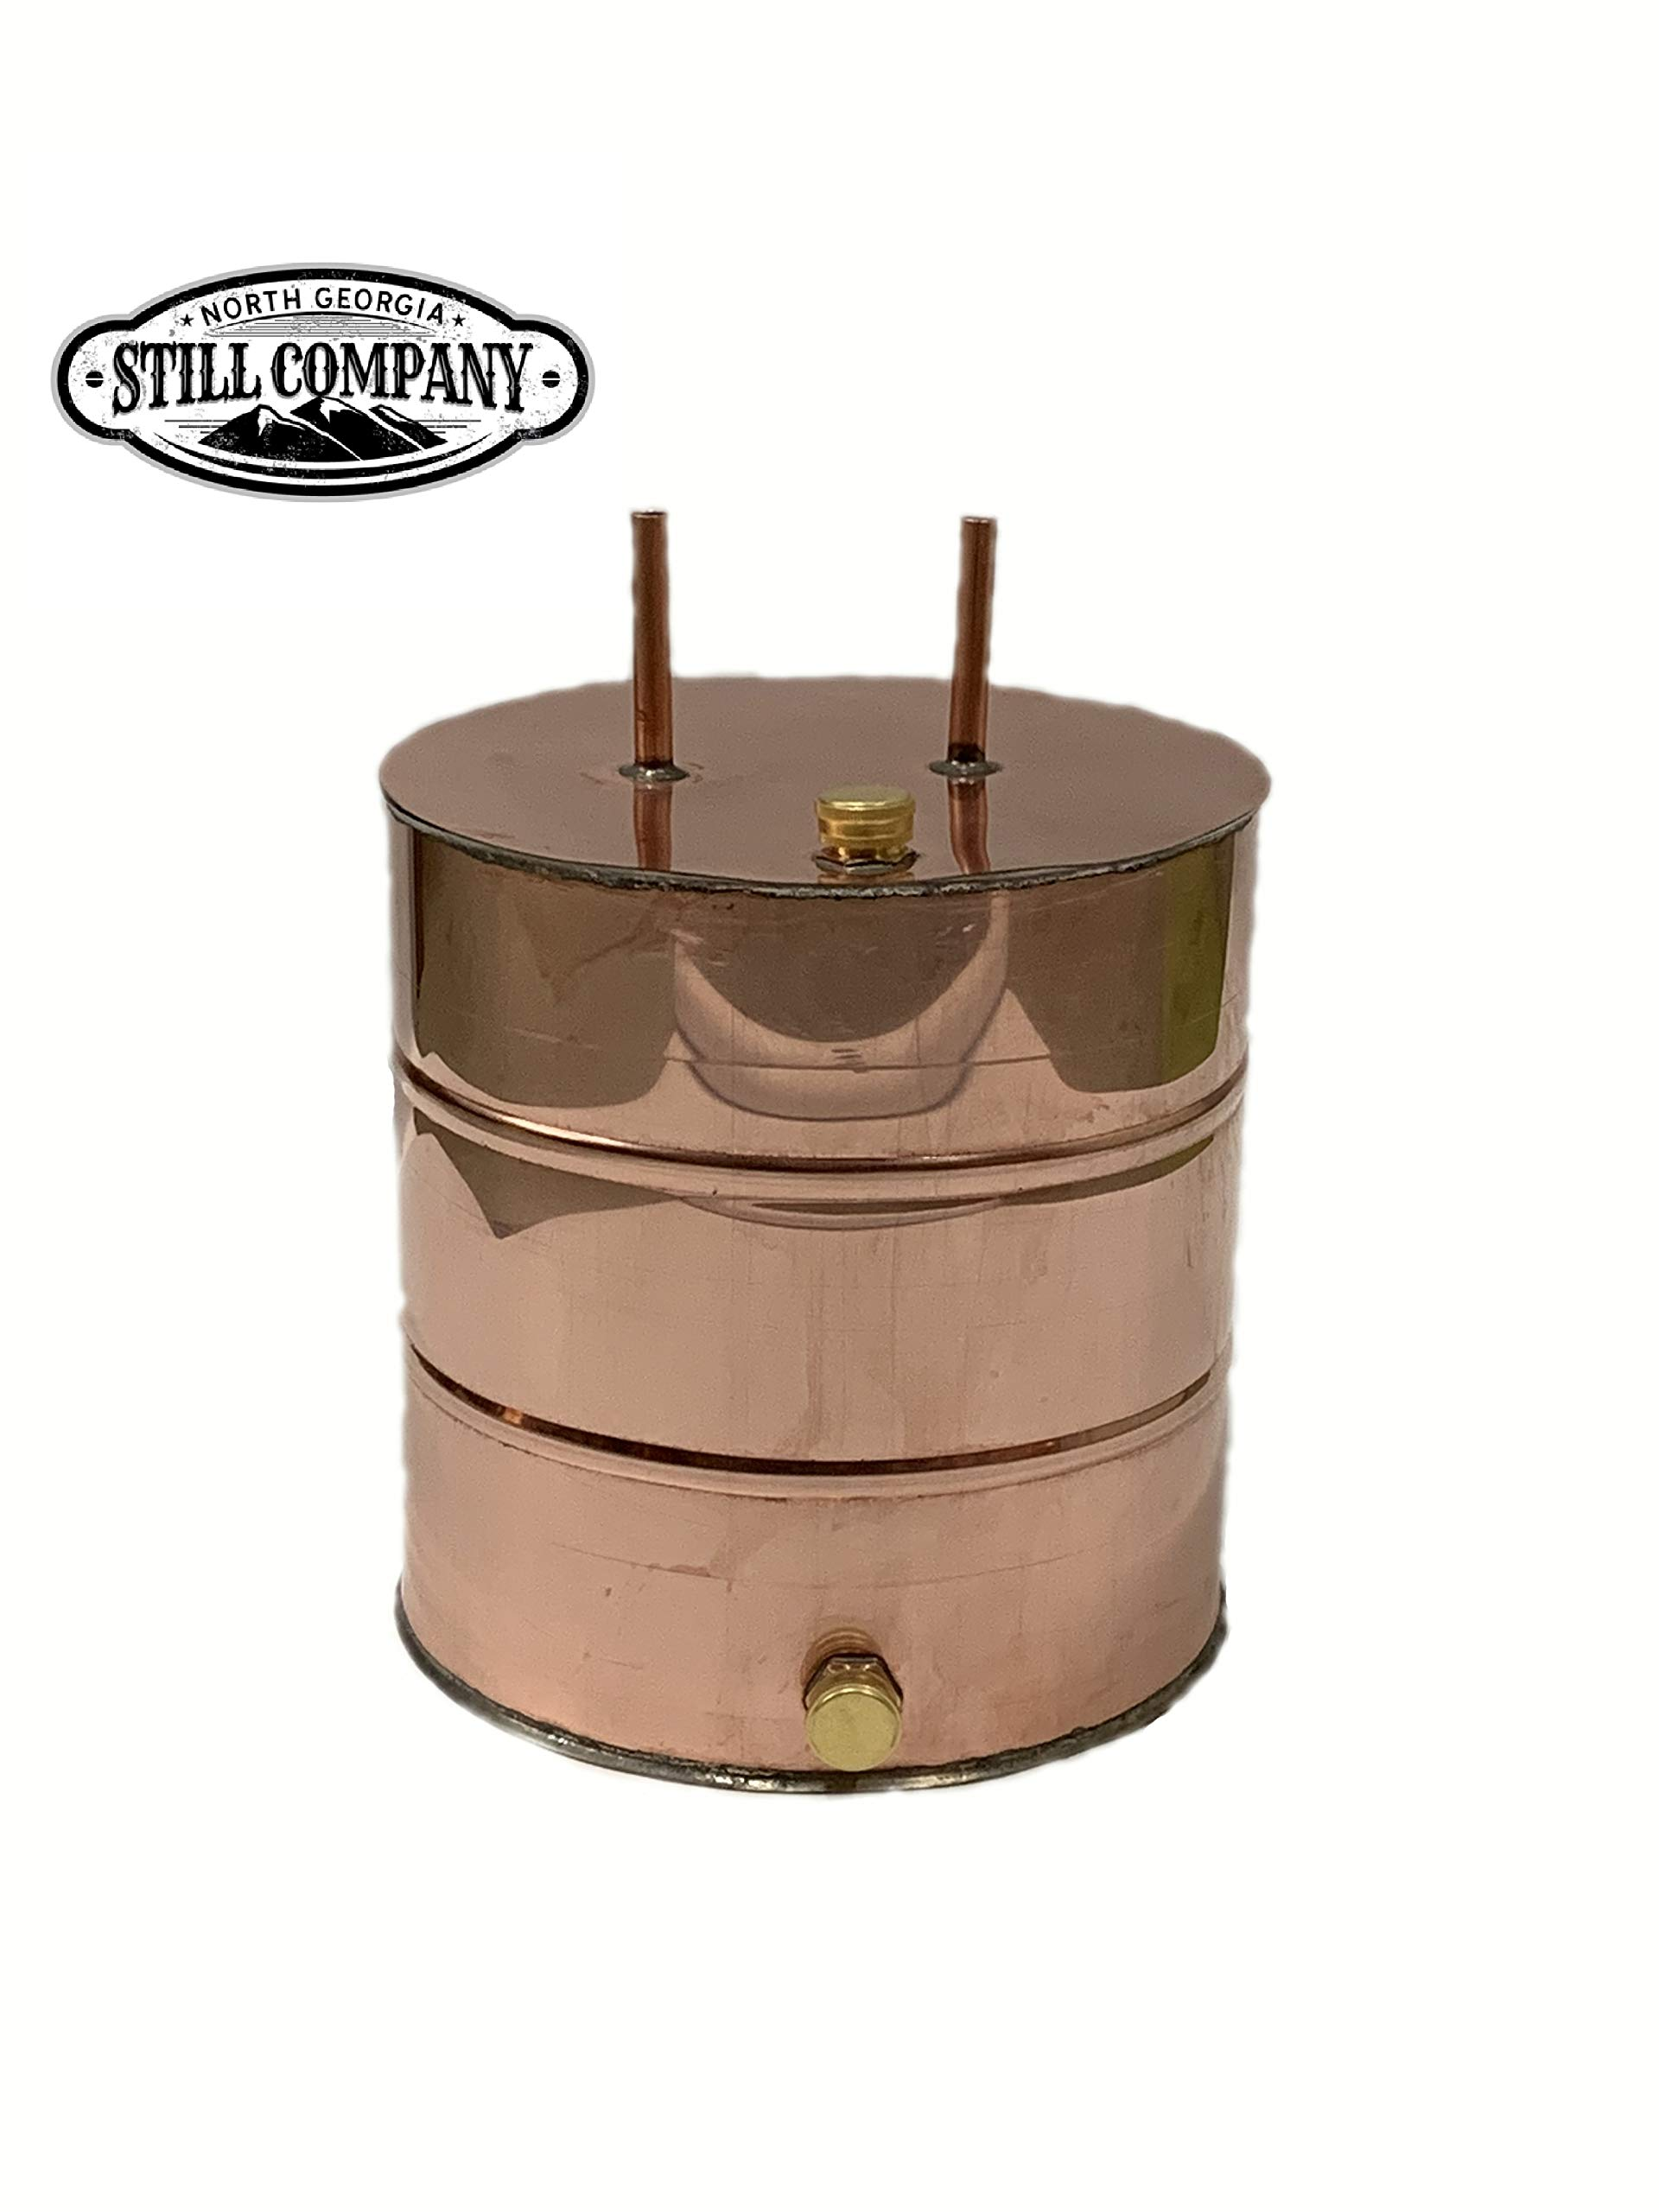 Moonshine Whiskey Still 5 Gallon Thumper Keg Doubler, 1/2 OD Tubing by North Georgia Still Company